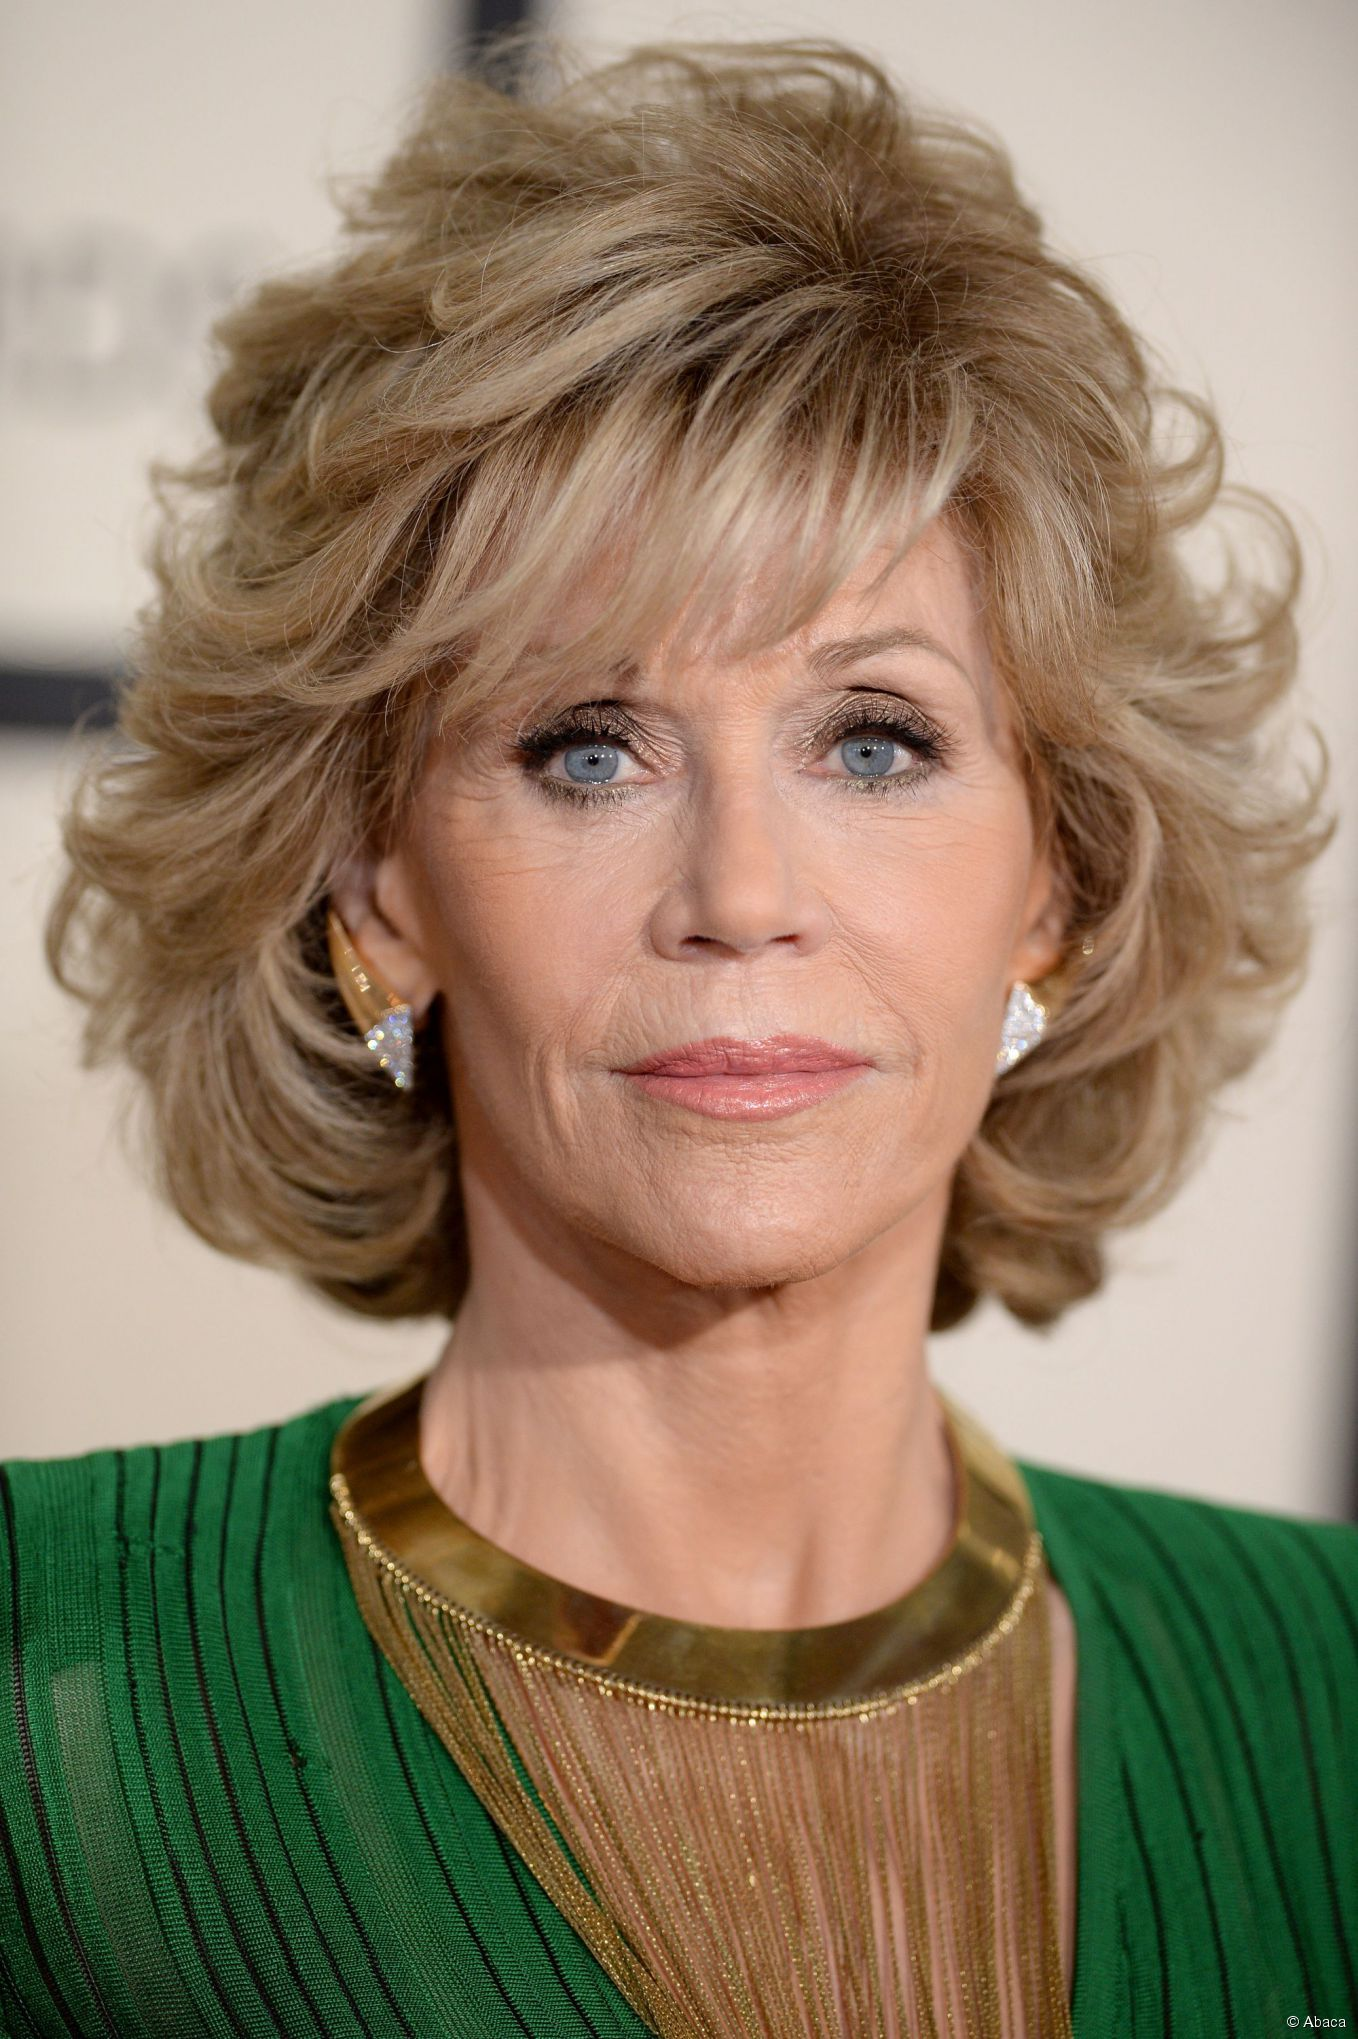 jane fonda attends the 57th annual grammy awards at the staples